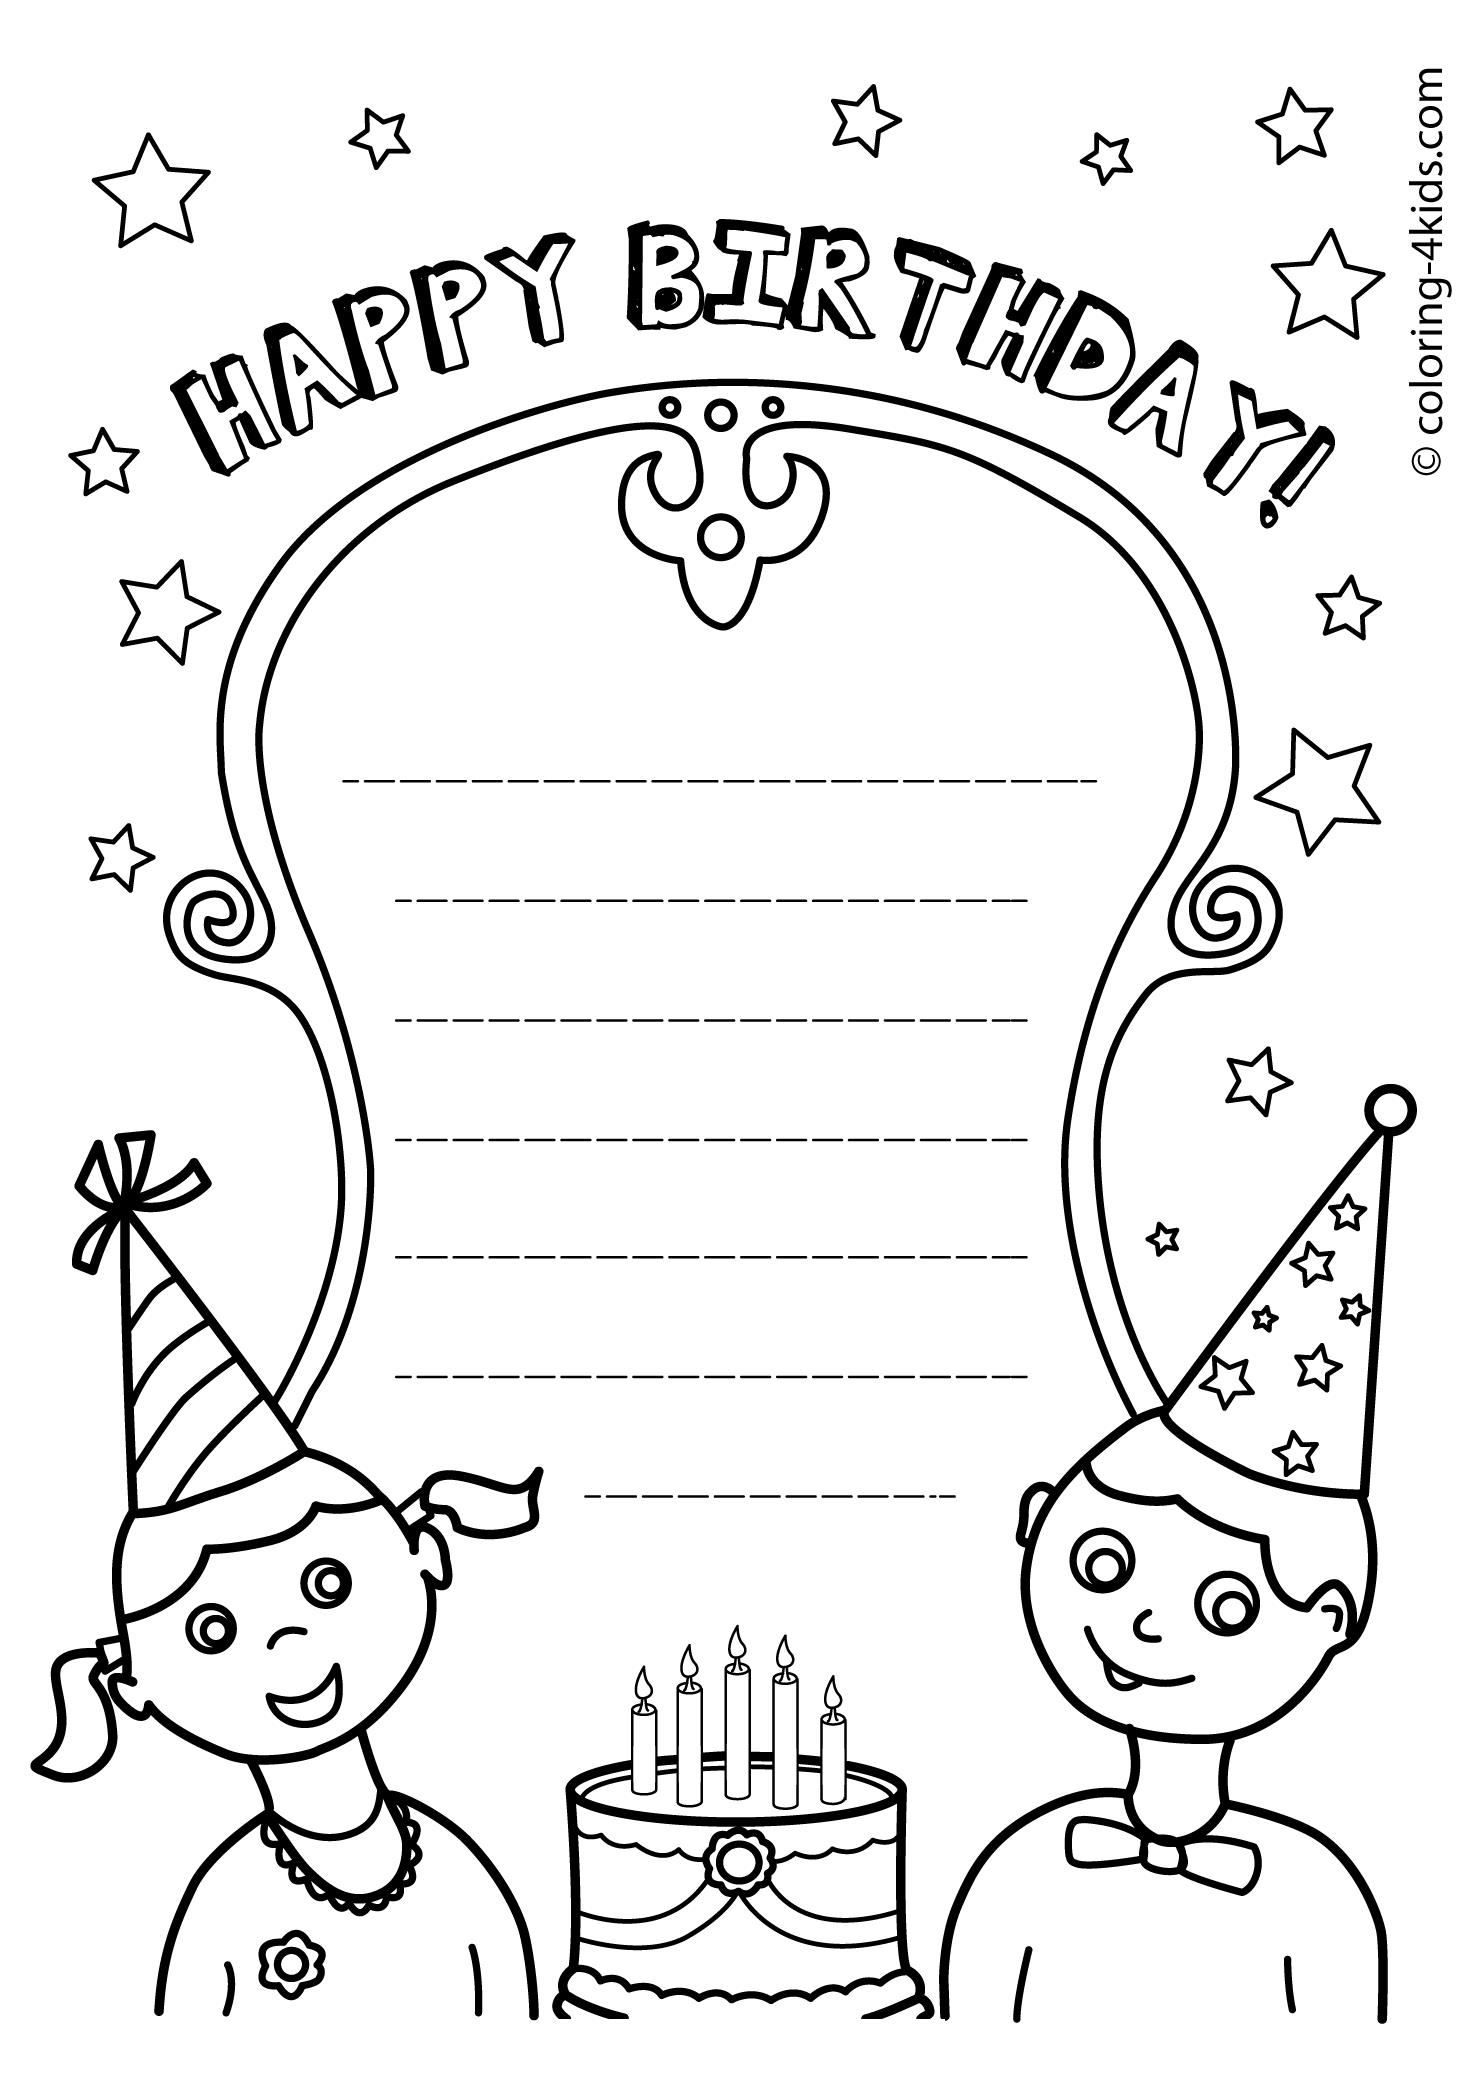 happy birthday free printable coloring pages ; complete-happy-birthday-aunt-coloring-pages-printables